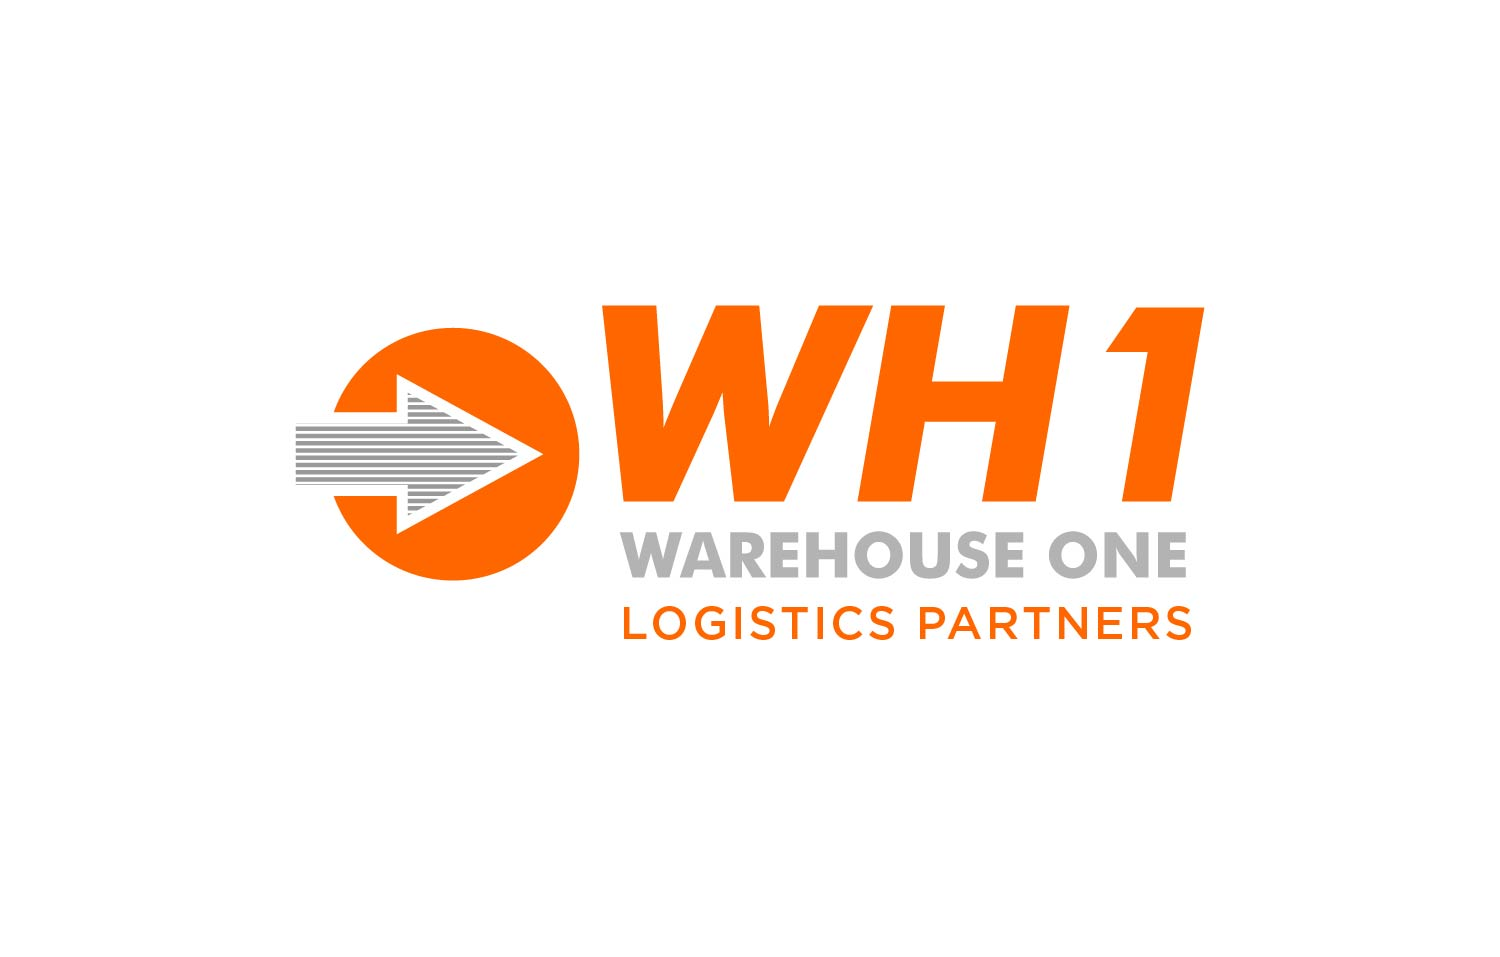 Warehouse One Distribution Ltd